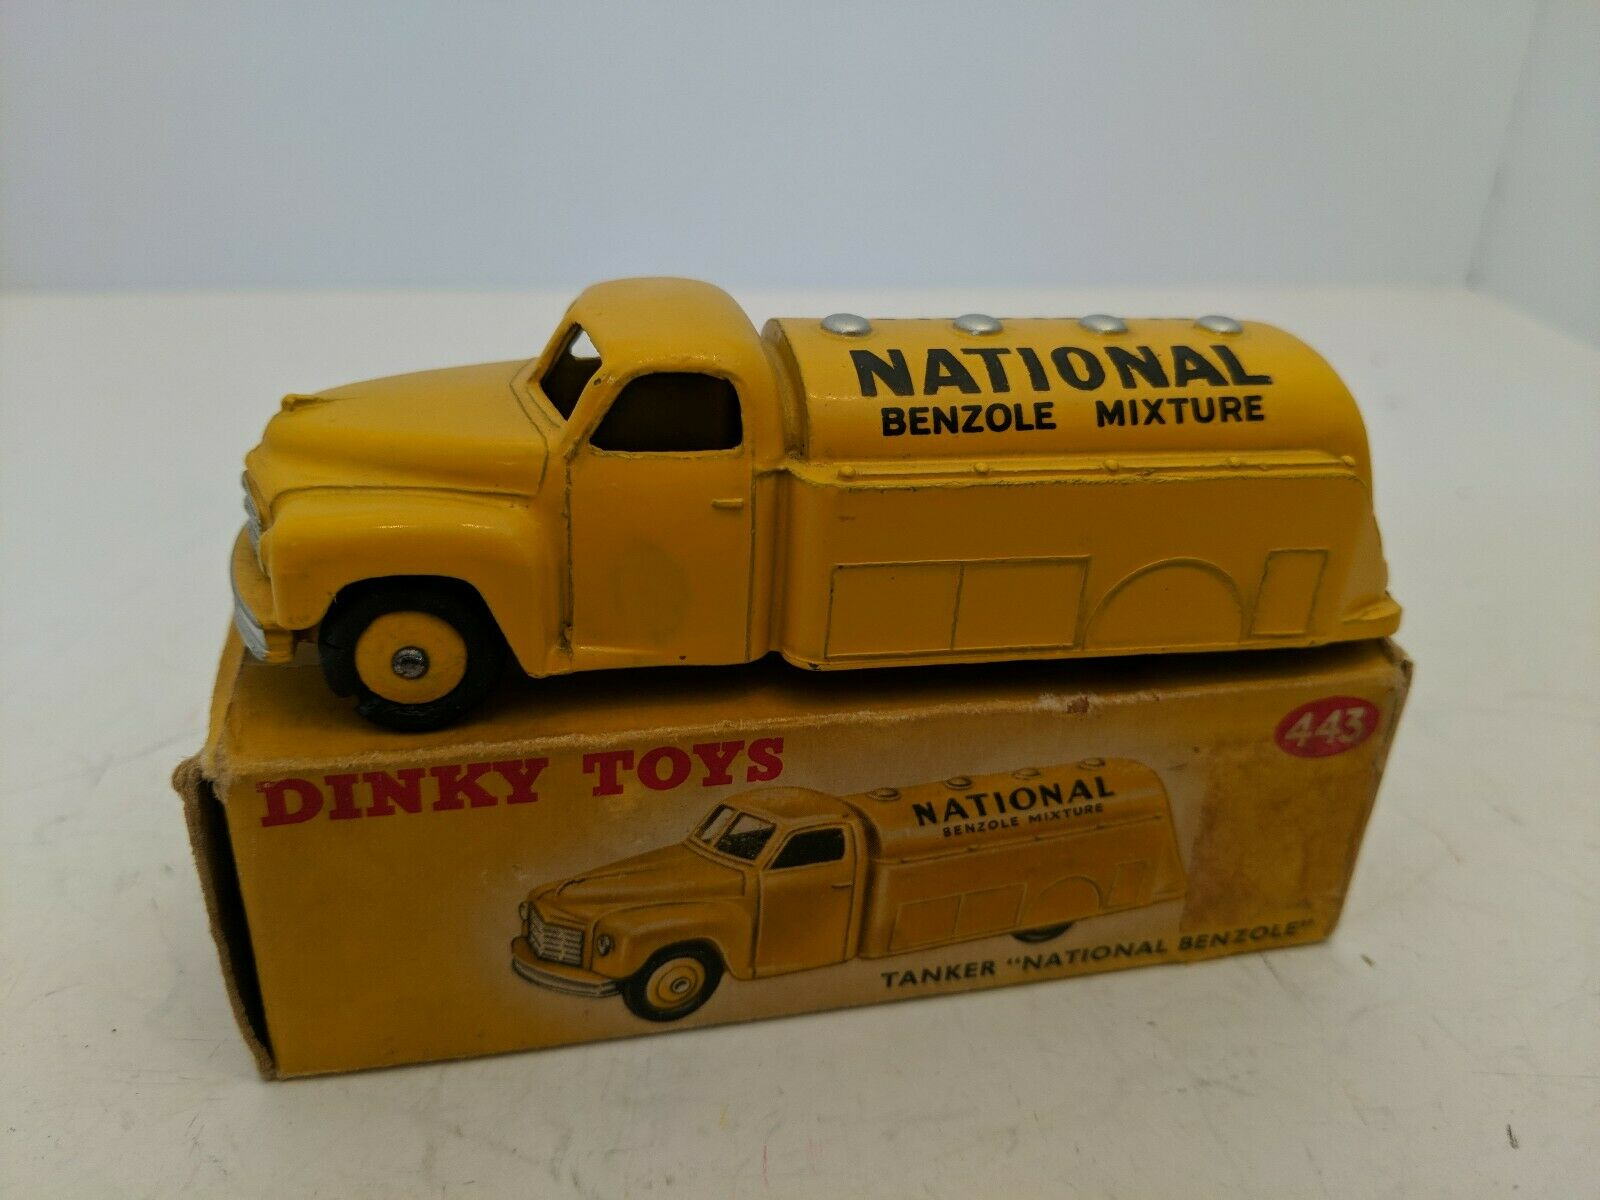 Dinky Toys 443 Studebaker Tanker National Benzole Mixture with box Pristine Mint